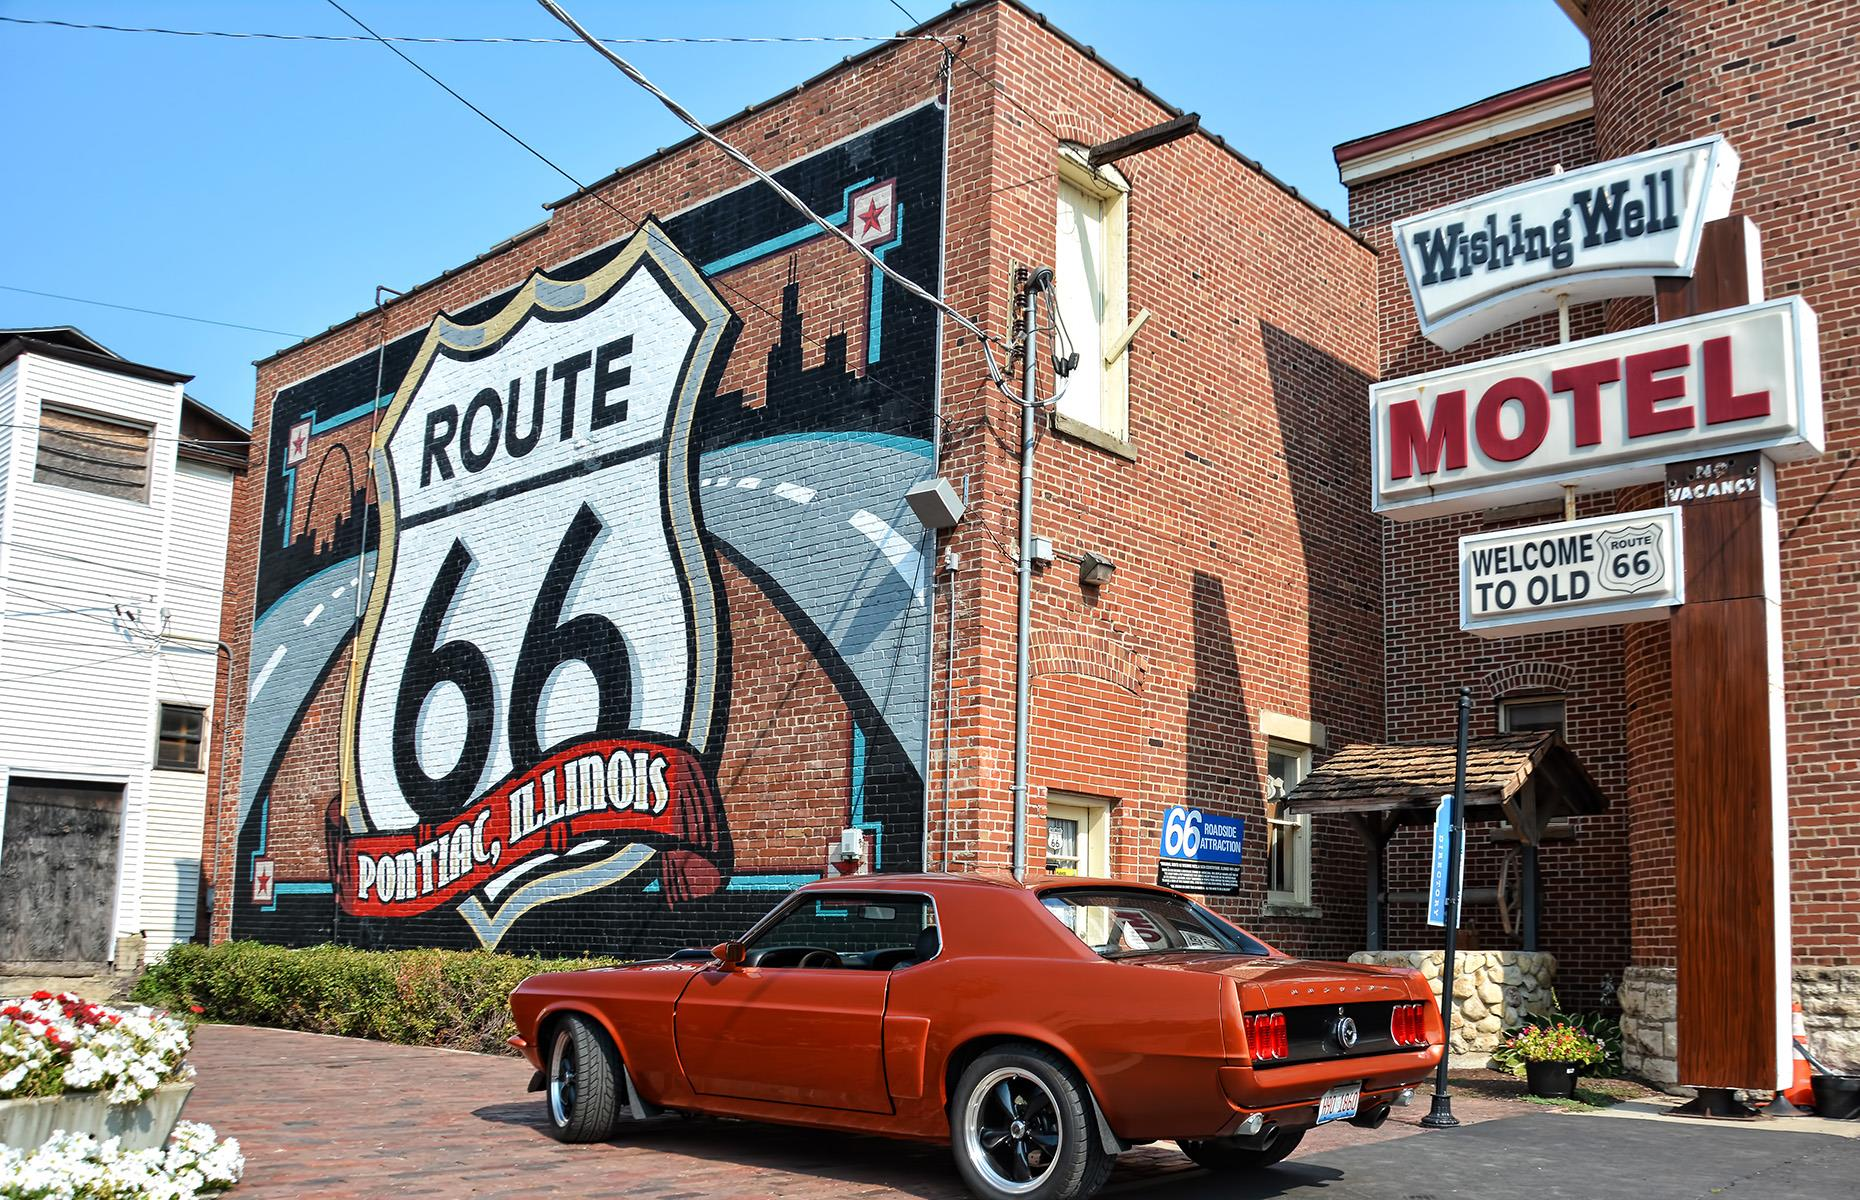 """Slide 27 of 101: The famed Route 66 sign downtownis a favoredphoto stopin Chicago, and thenthe sights and sounds of the city dissolve into the open road.Pontiac's Illinois Route 66 Hall of Fame and Museum (pictured and currently open) isaround 100 miles (161km) in, and comes crammed with memorabilia relating to""""Mother Road"""". Farther on, Springfield haskitsch slices of Americana like the Cozy Dog Drive In, a drive-in-cum-Route-66-museum. The final stop isCollinsville, close to the Cahokia Mounds State Historic Site."""